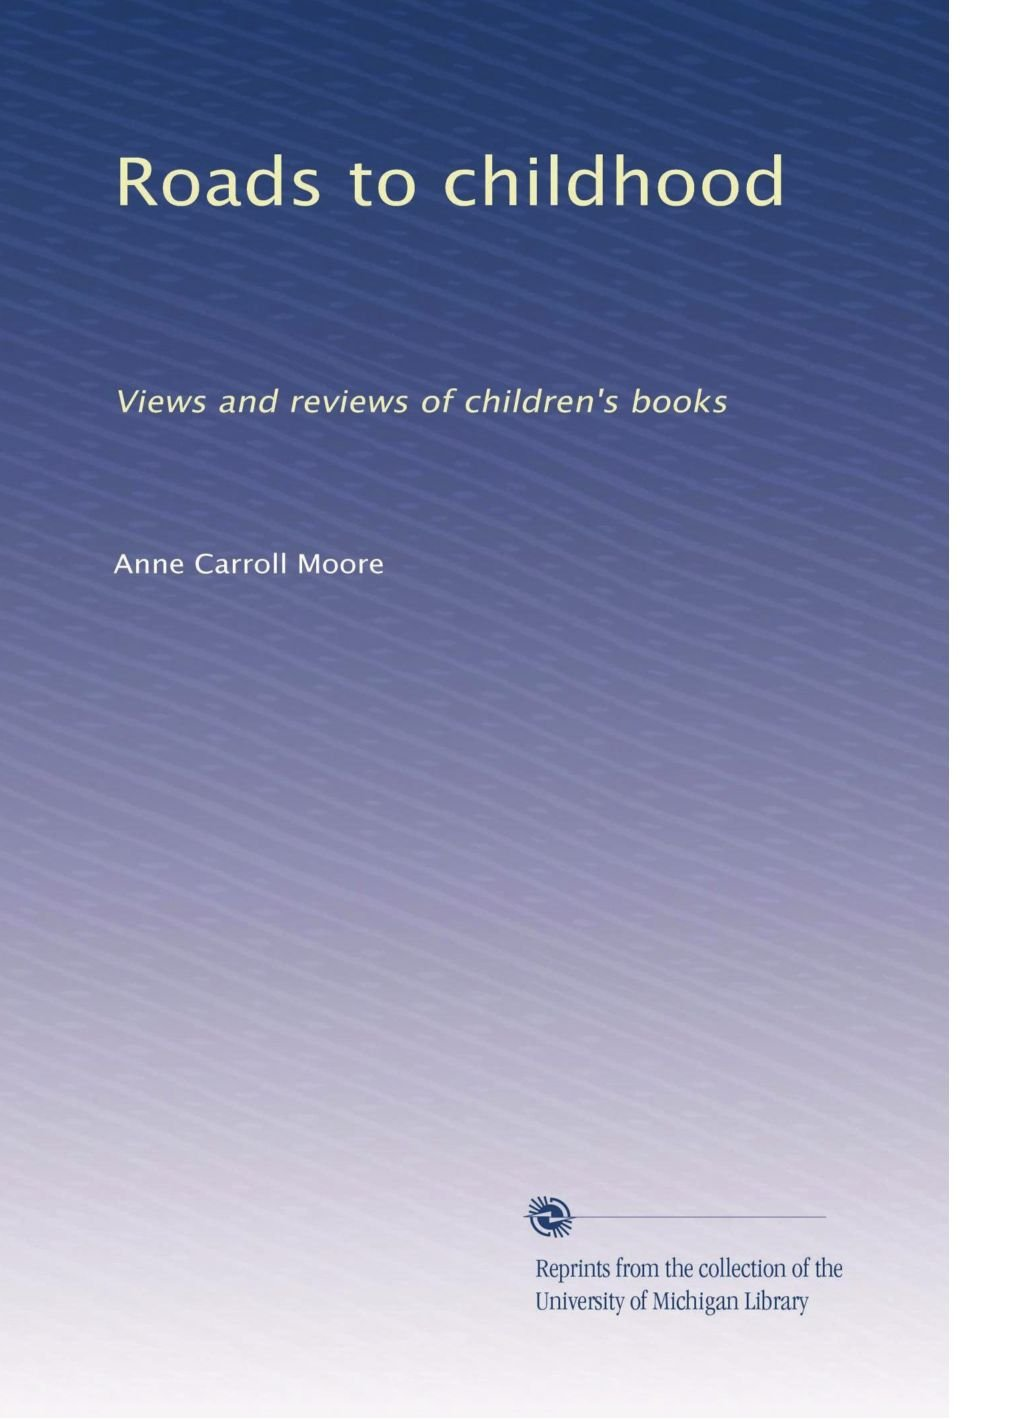 Download Roads to childhood: Views and reviews of children's books ebook